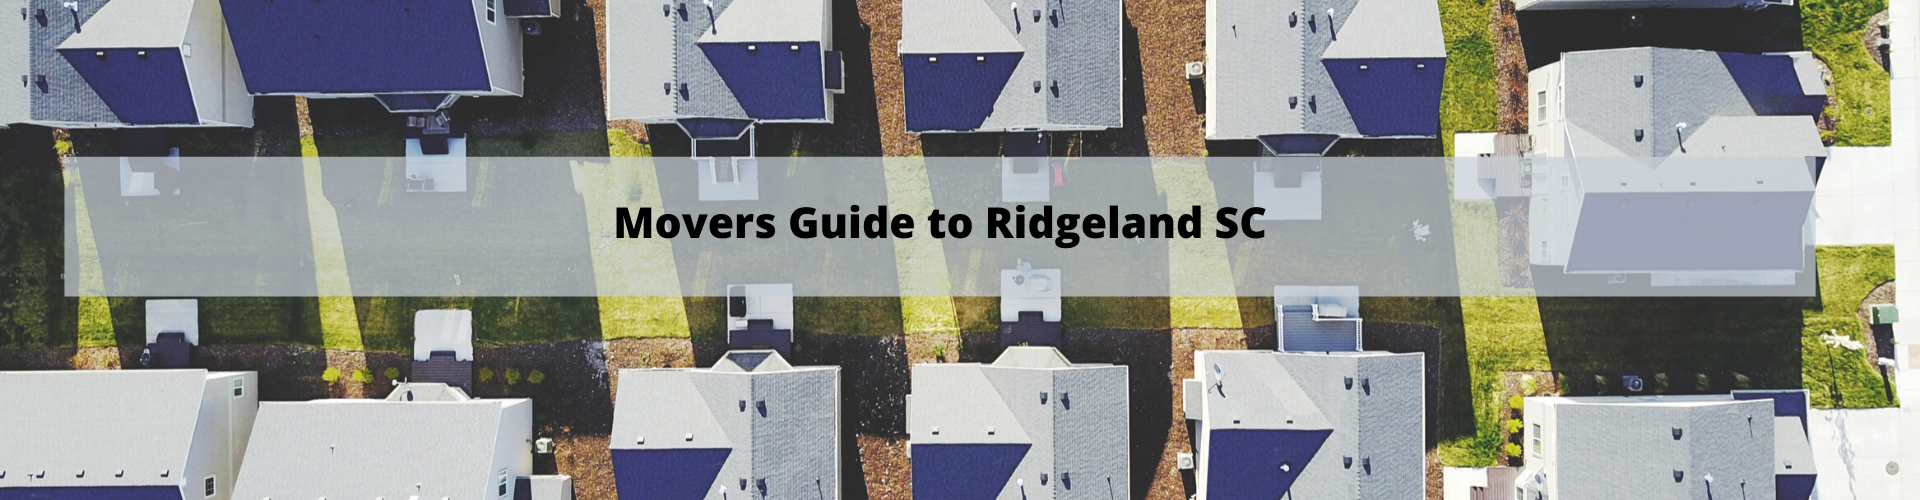 Movers Guide to Ridgeland SC